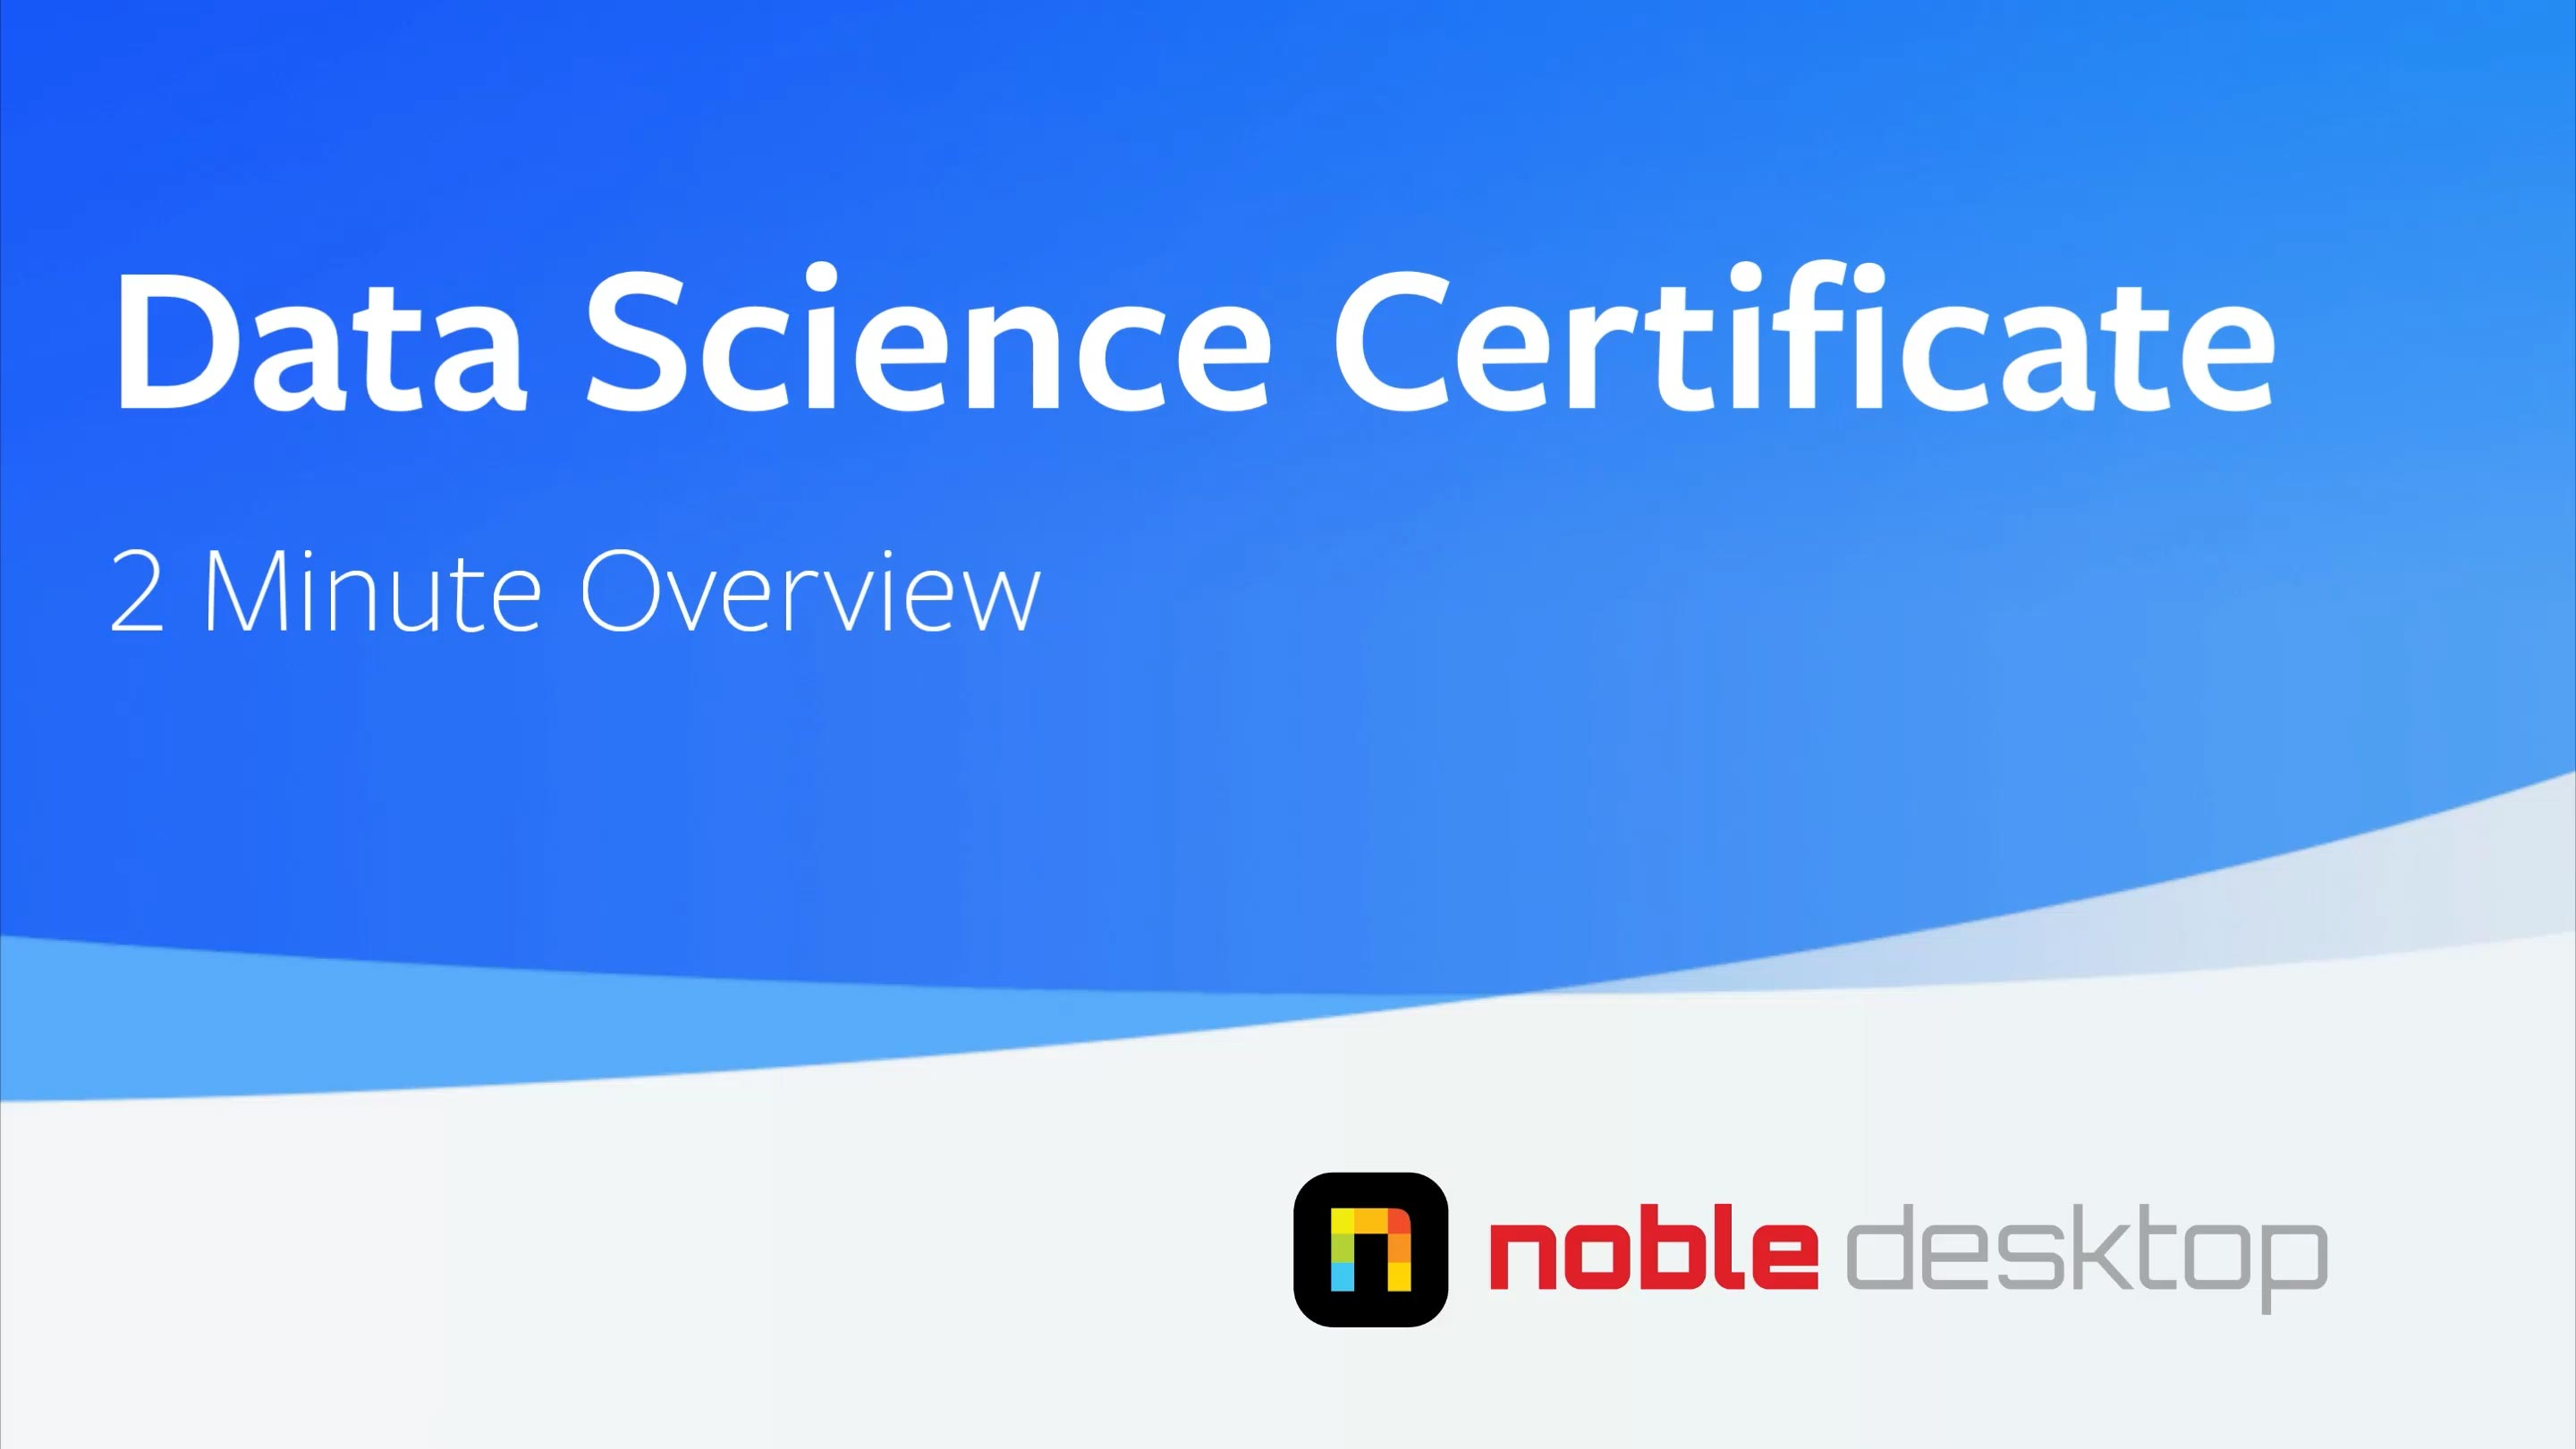 Data Science Certificate Class Overview